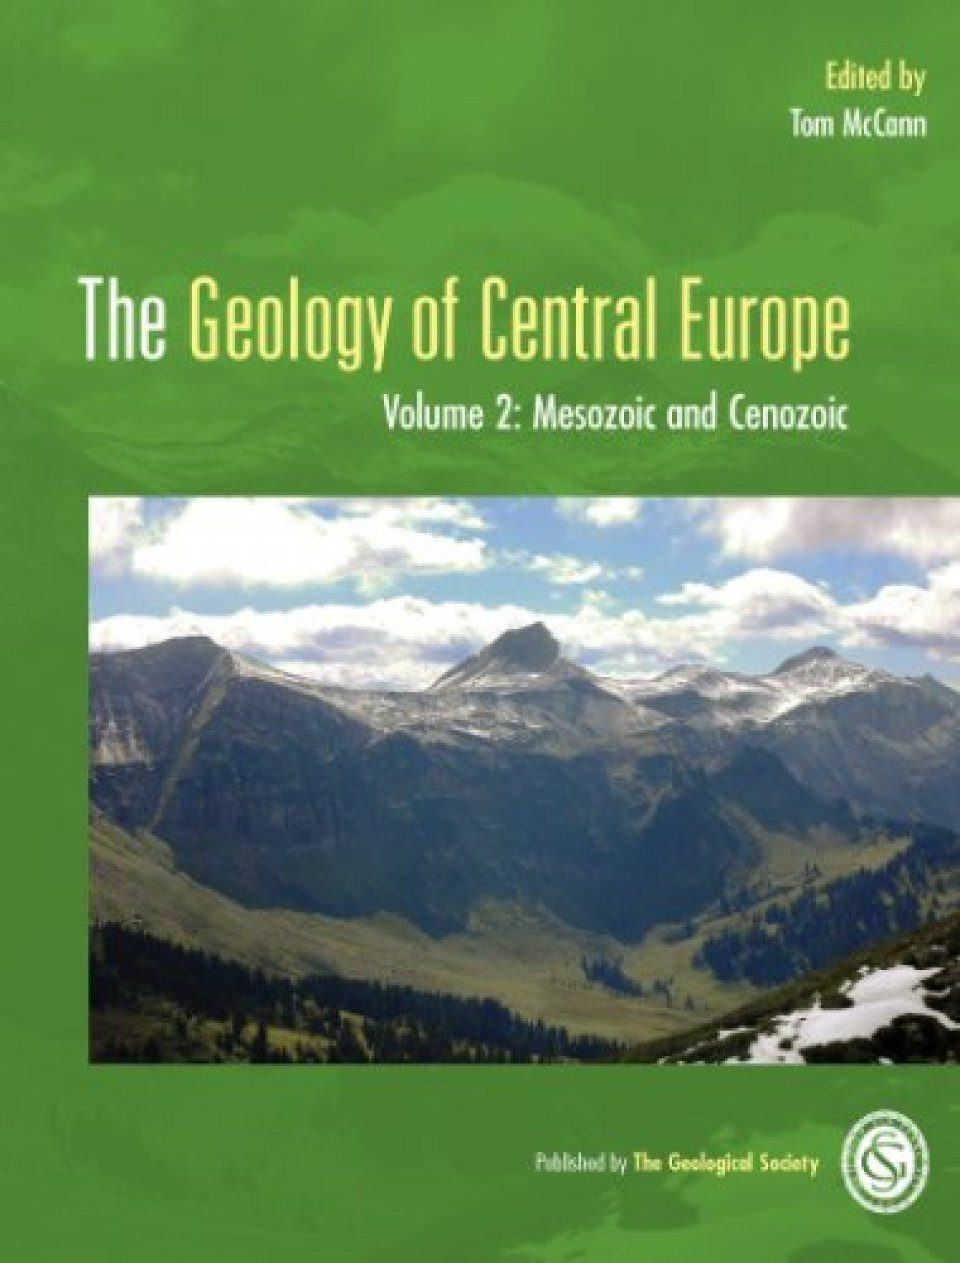 The Geology of Central Europe, Volume 2